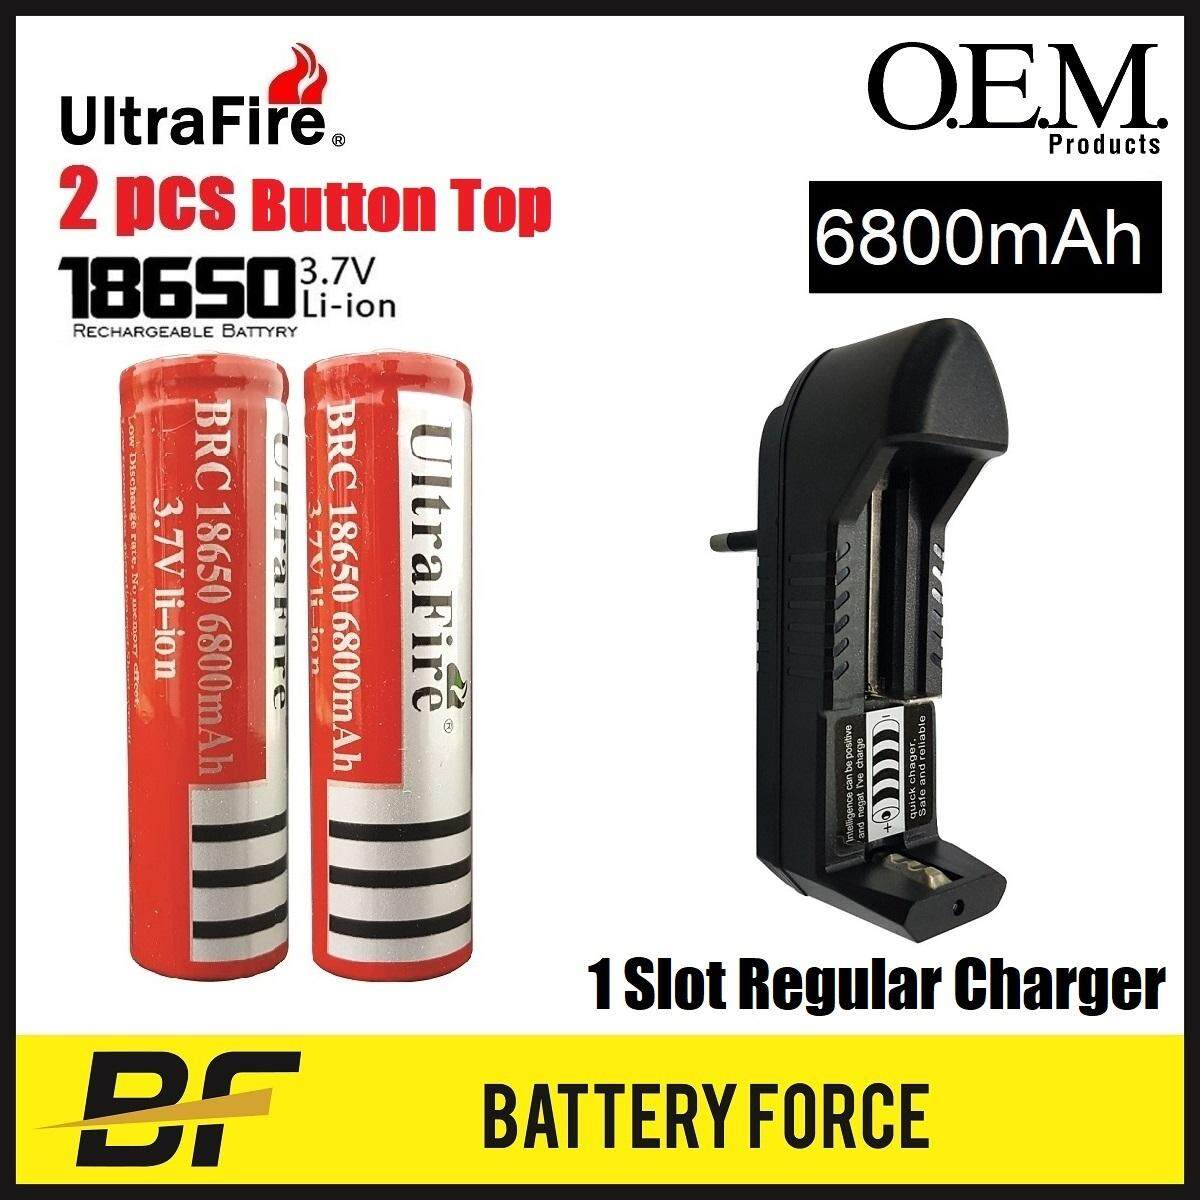 Combo 3.7V 18650 UltraFire 6800mAH Button Top Rechargeable Lithium Ion Battery BRC With 1 Slot Charger